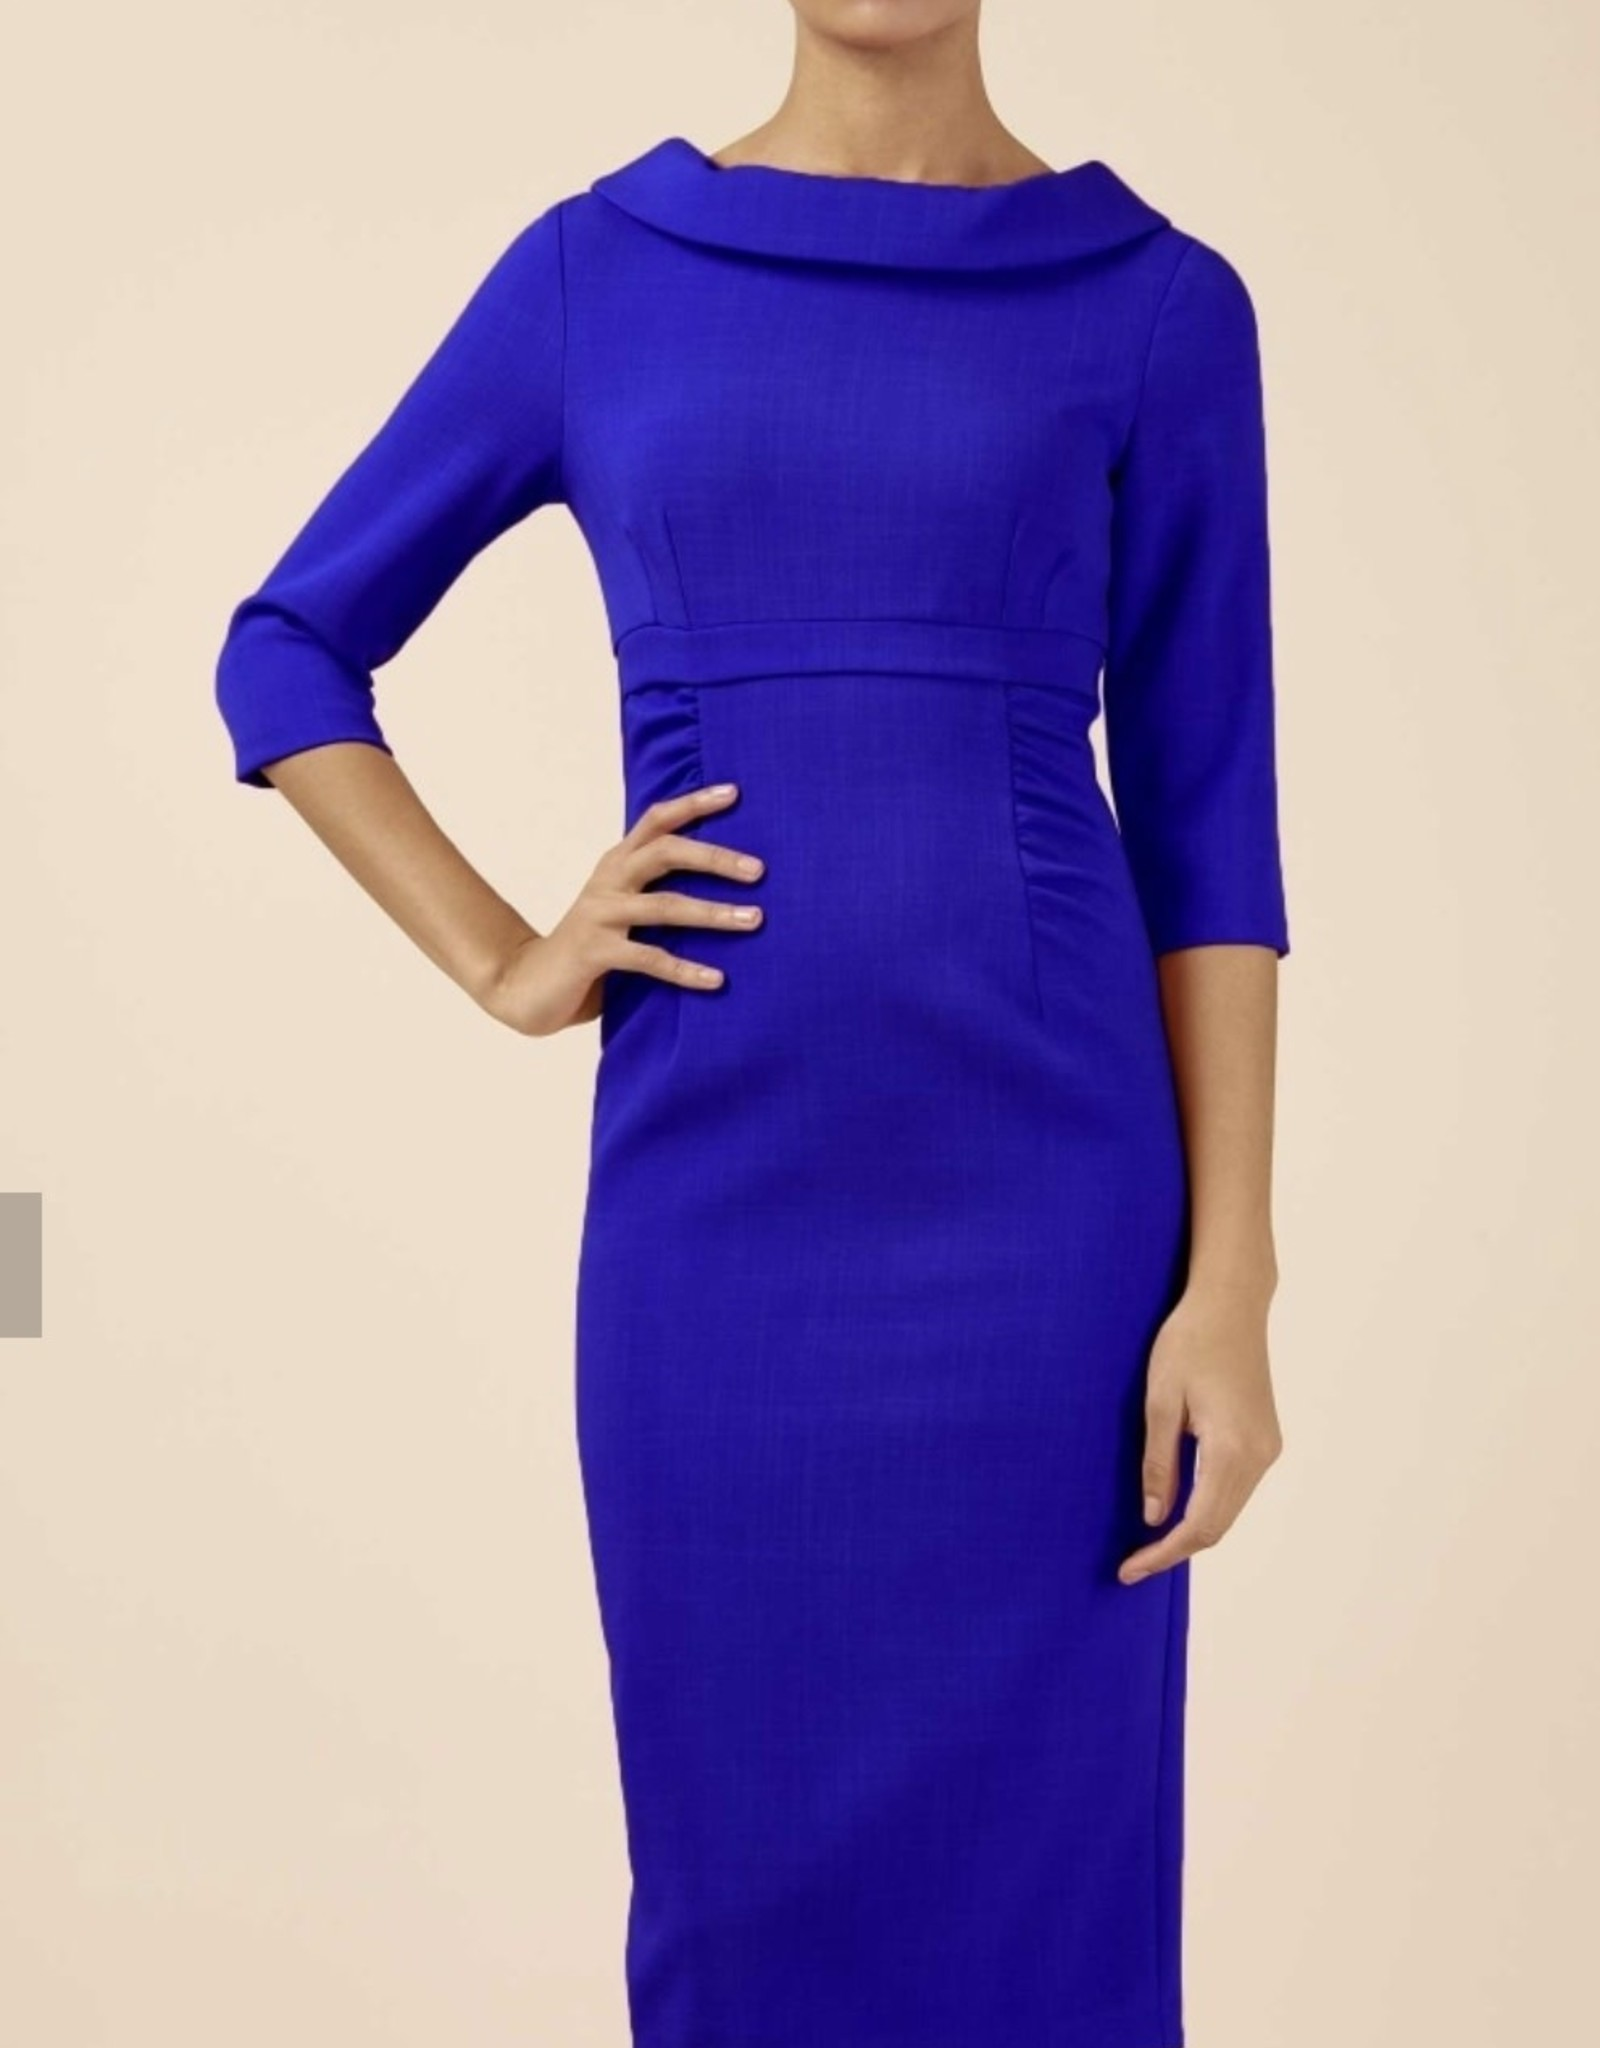 PRETTY DRESS COMPANY TINSLEY ROLL COLLAR PENCIL DRESS BY PDC